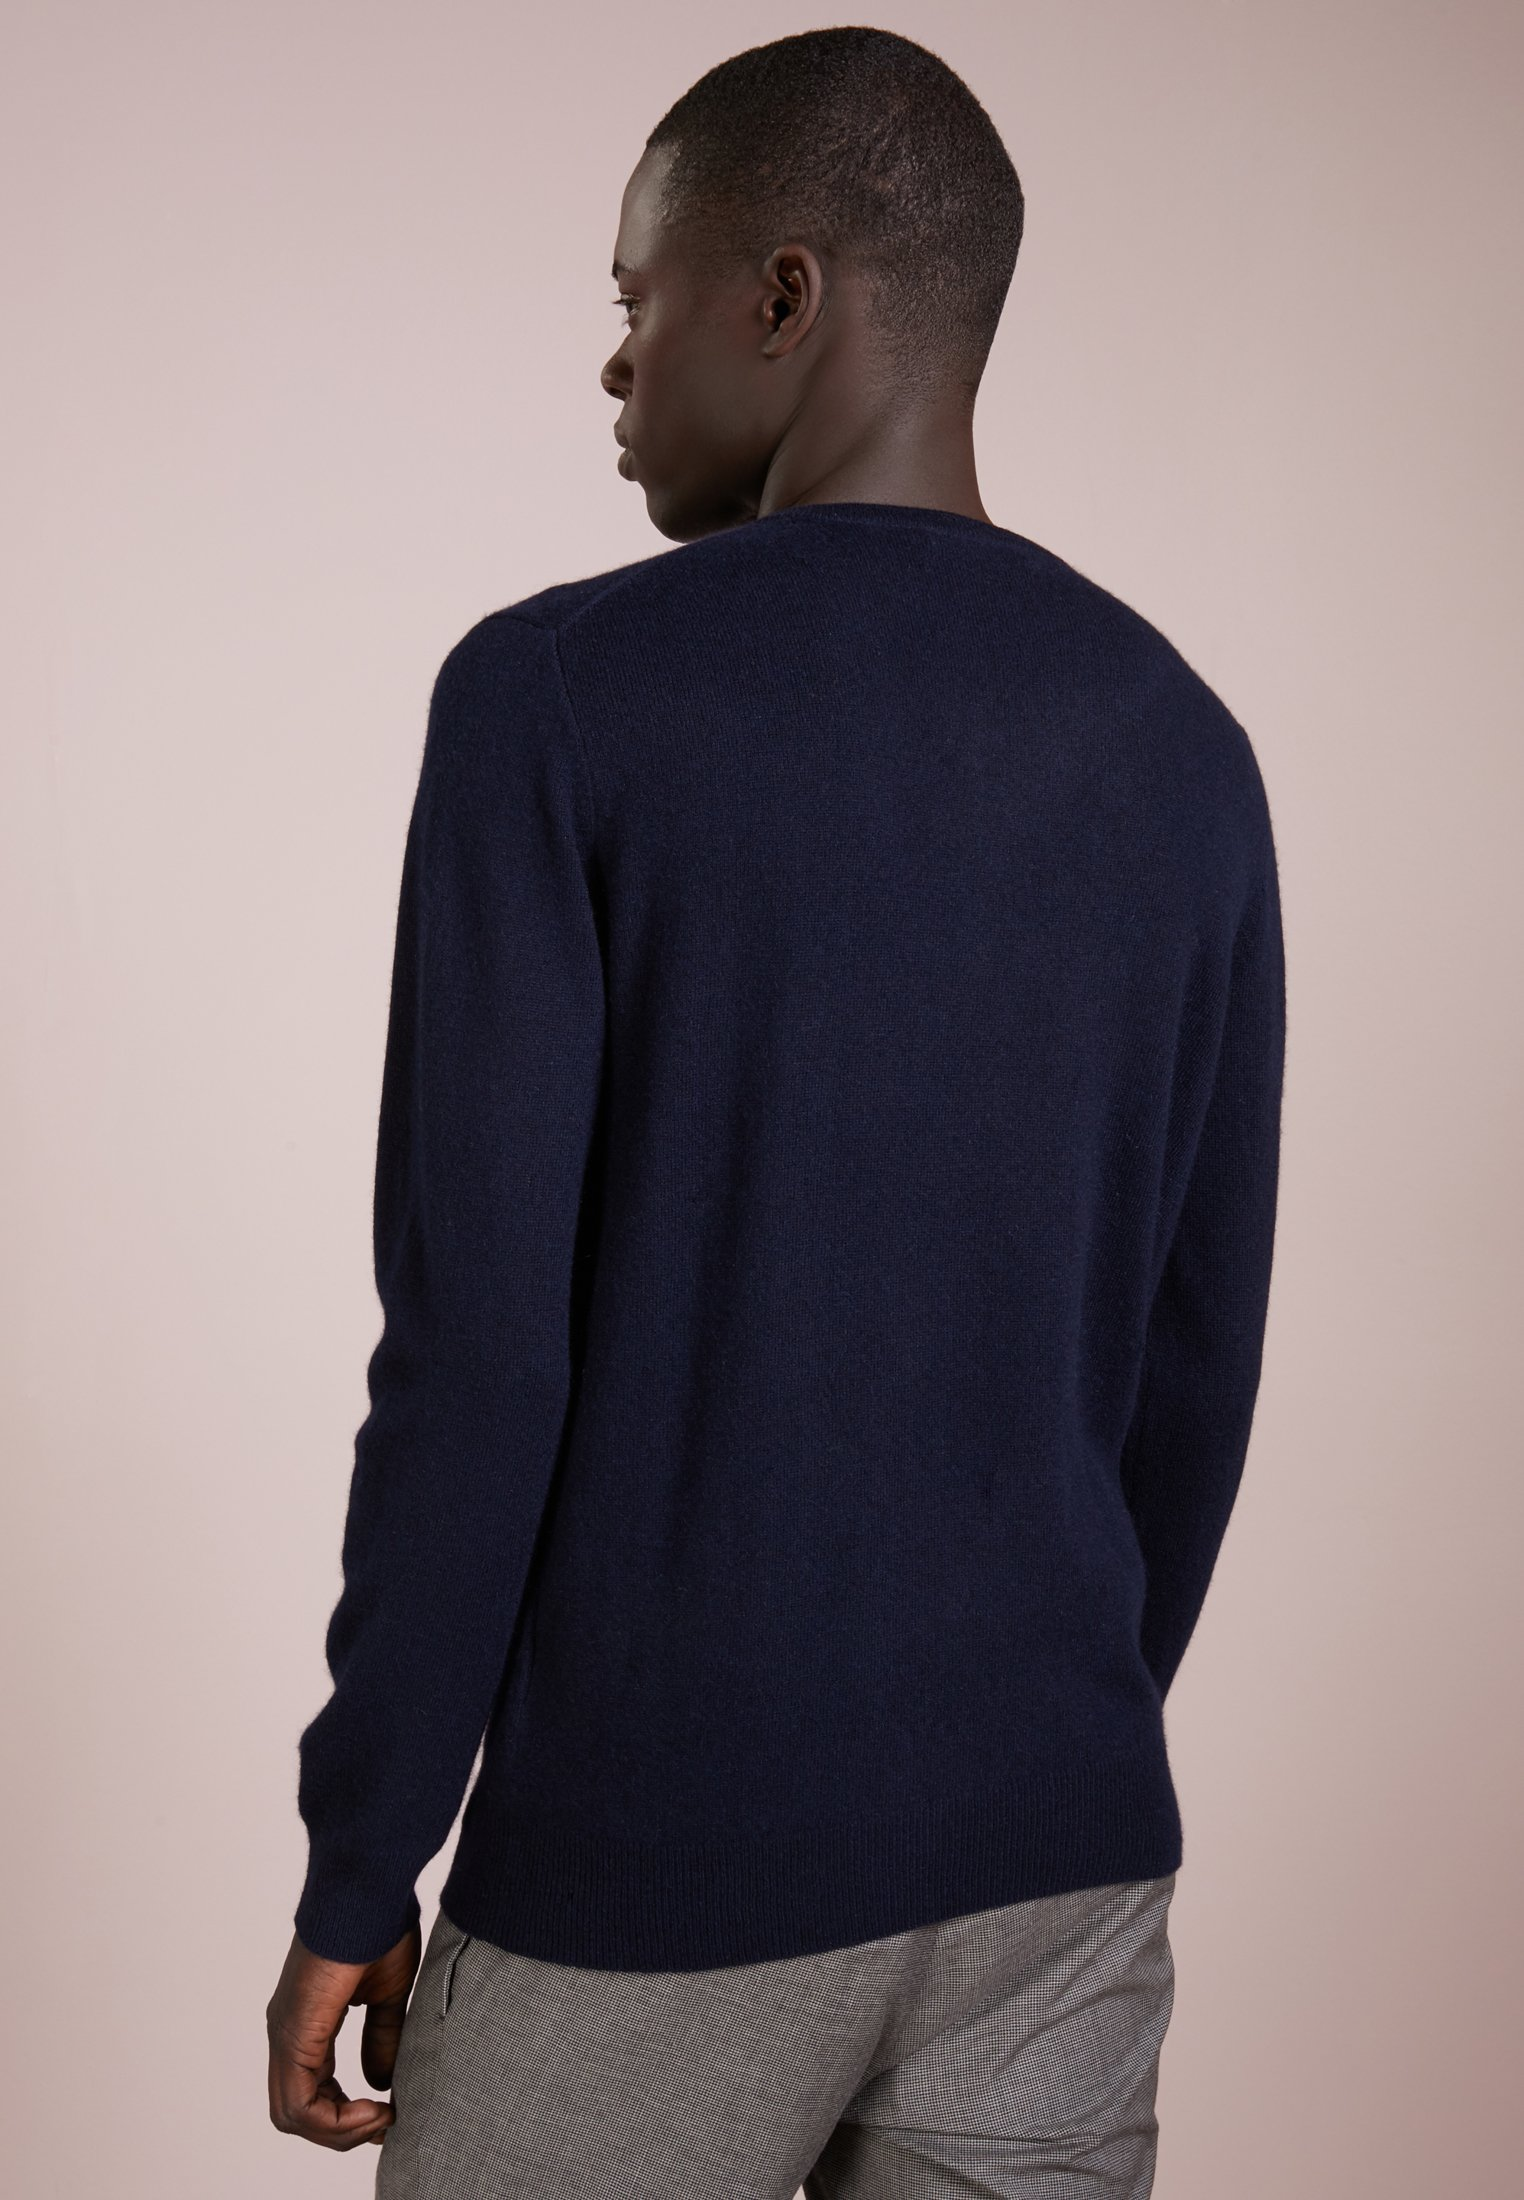 Pure Cashmere Dark Neck SweaterPullover Navy Crew Mens rdCQhts